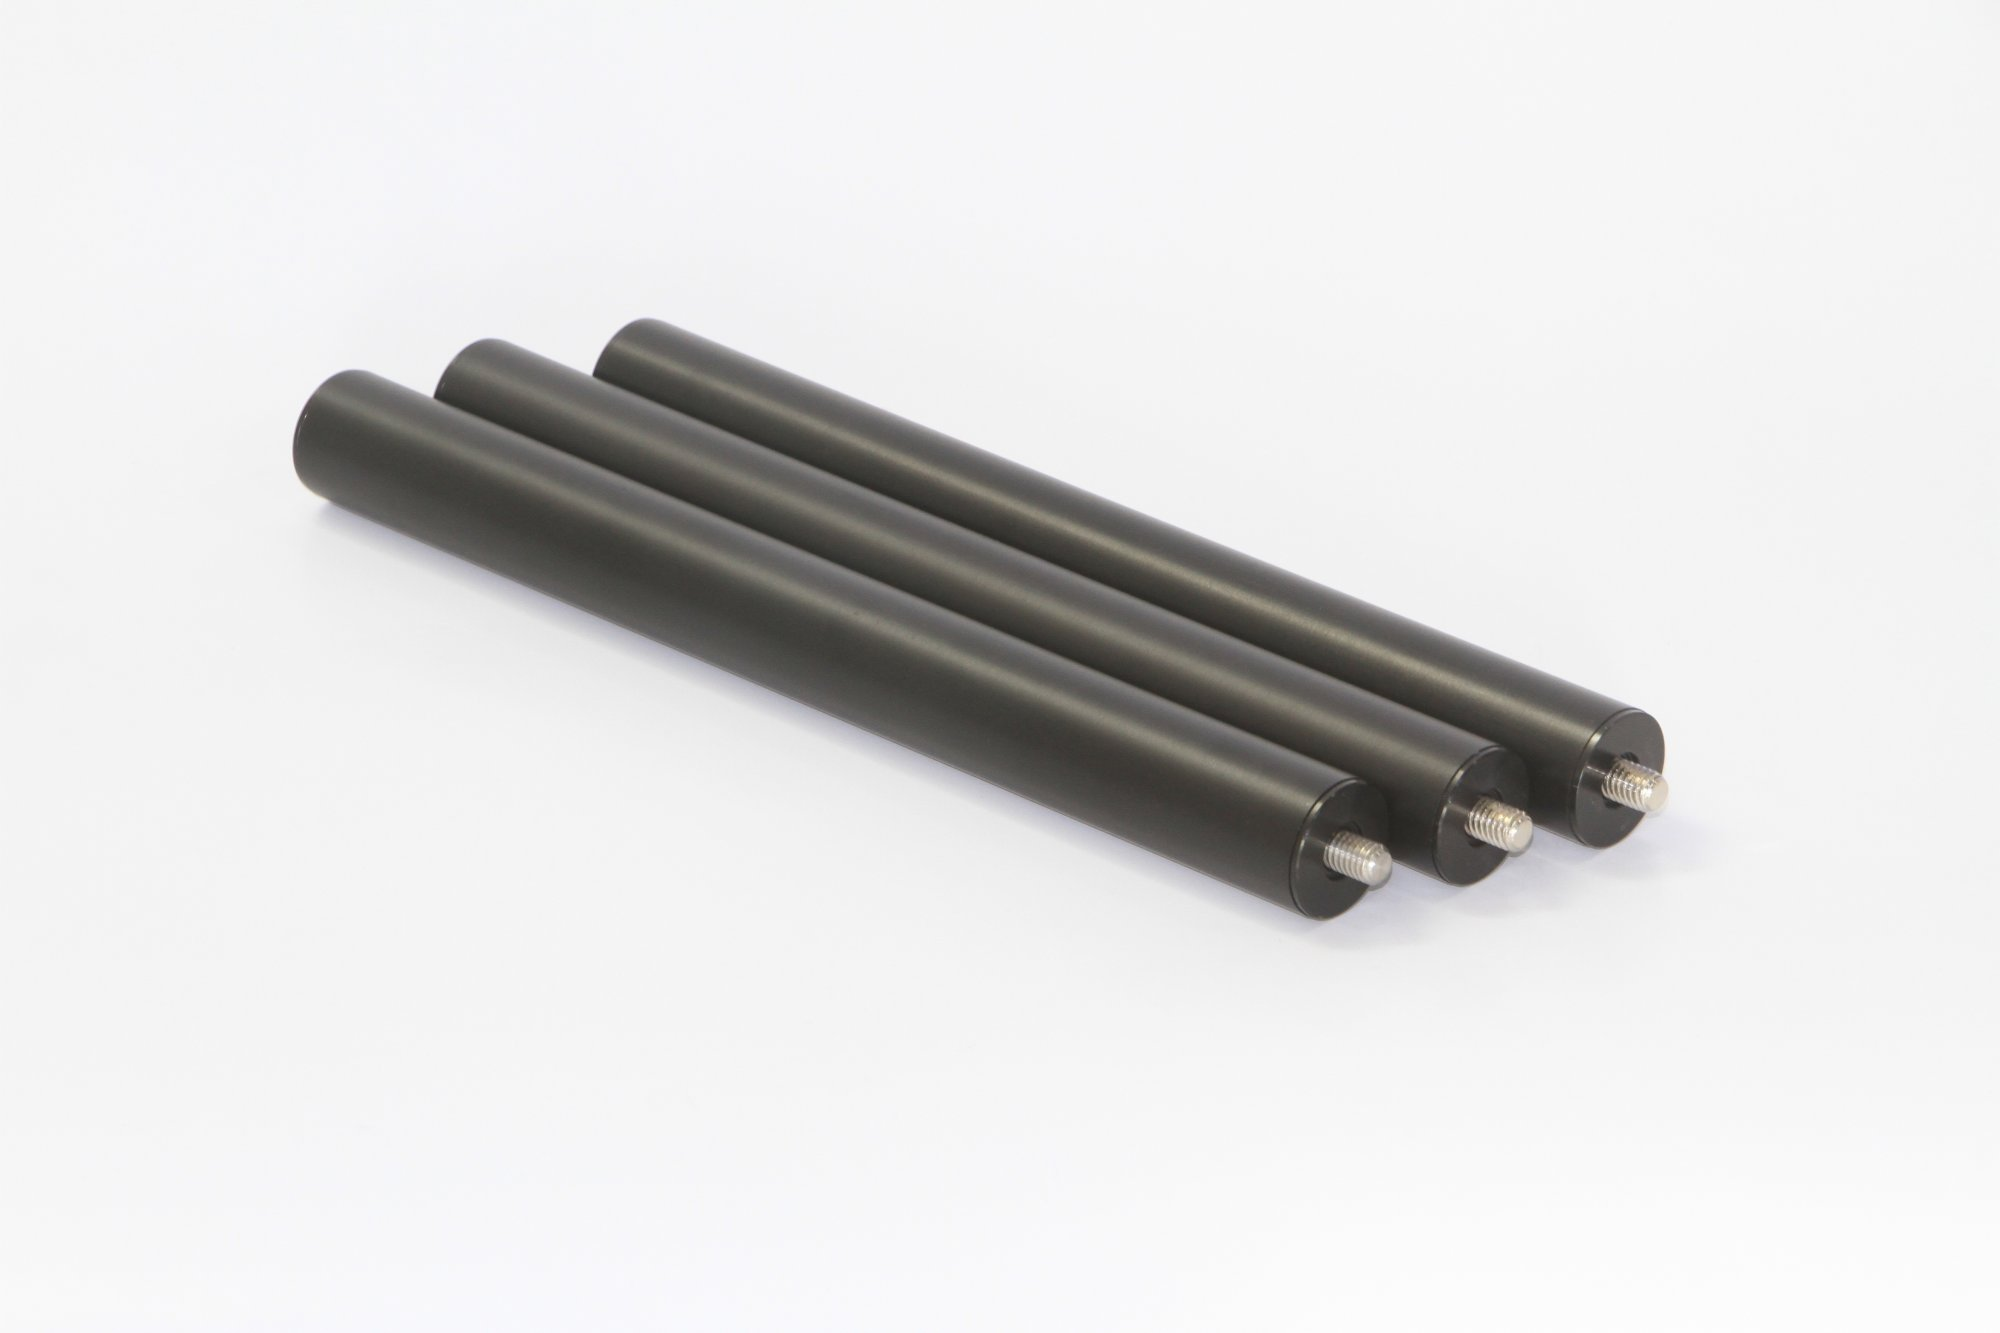 12 Leg Extension 3 pack, 32mm Aluminum